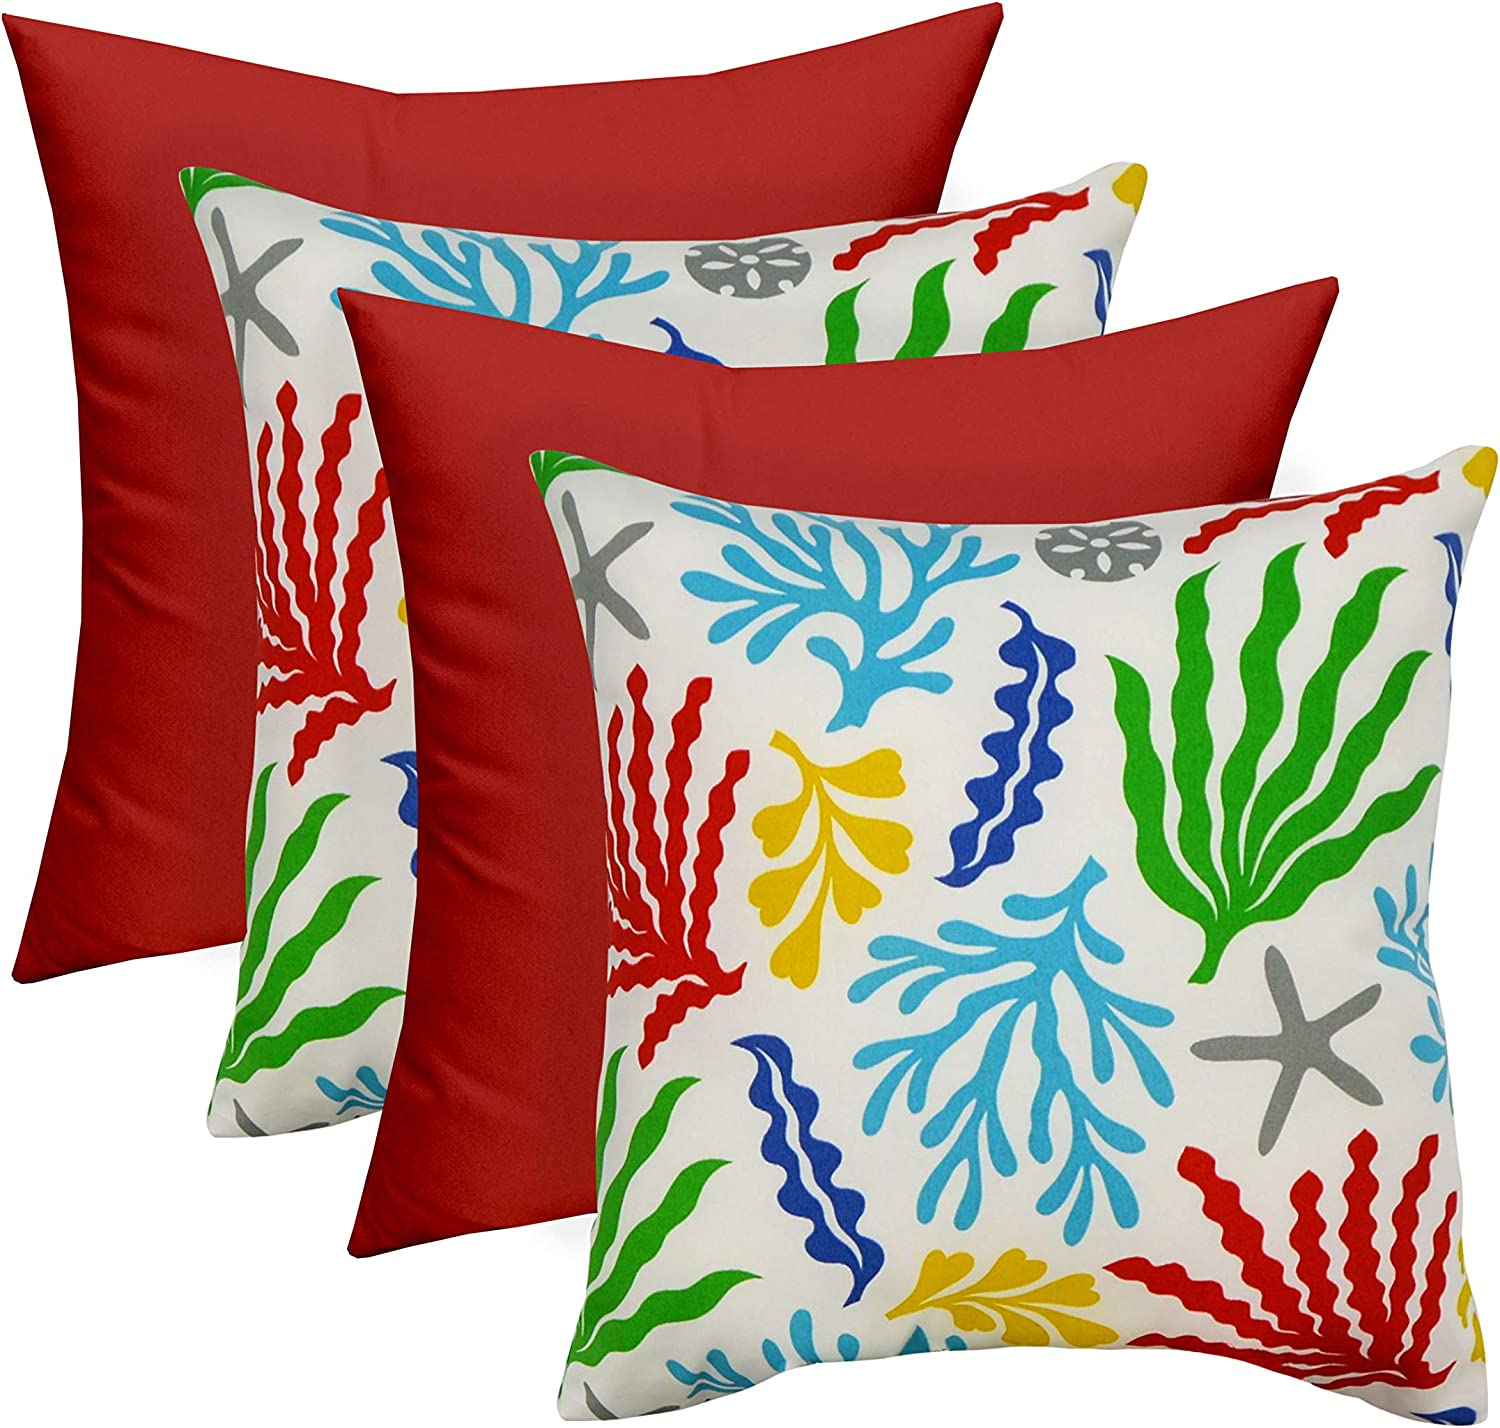 Set of 4 – Indoor Outdoor Square Decorative 20 Throw Toss Pillows – Bashor Fresco Choose Color Red